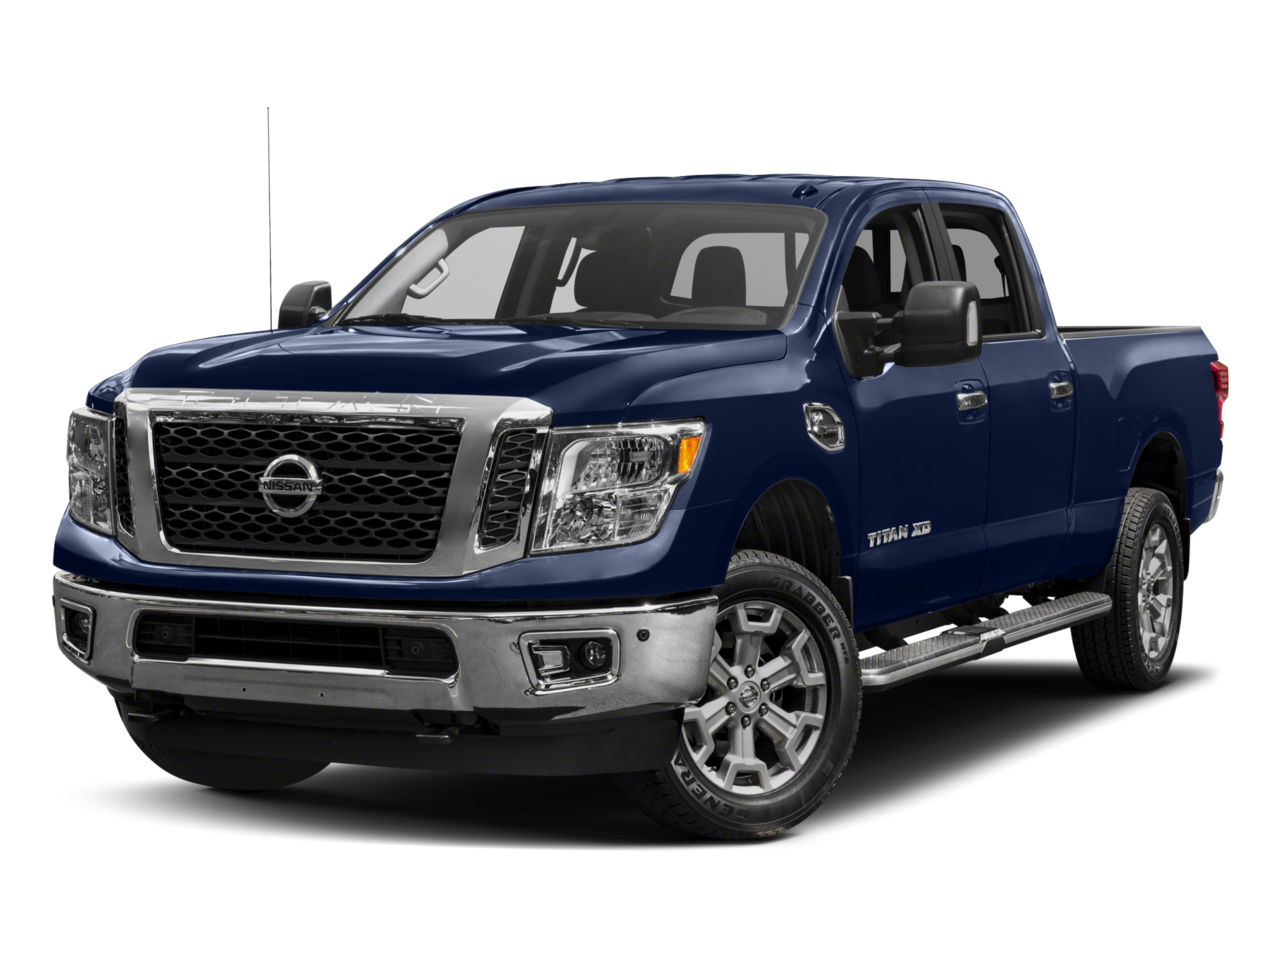 2017 nissan titan xd nissan of silsbee silsbee tx. Black Bedroom Furniture Sets. Home Design Ideas